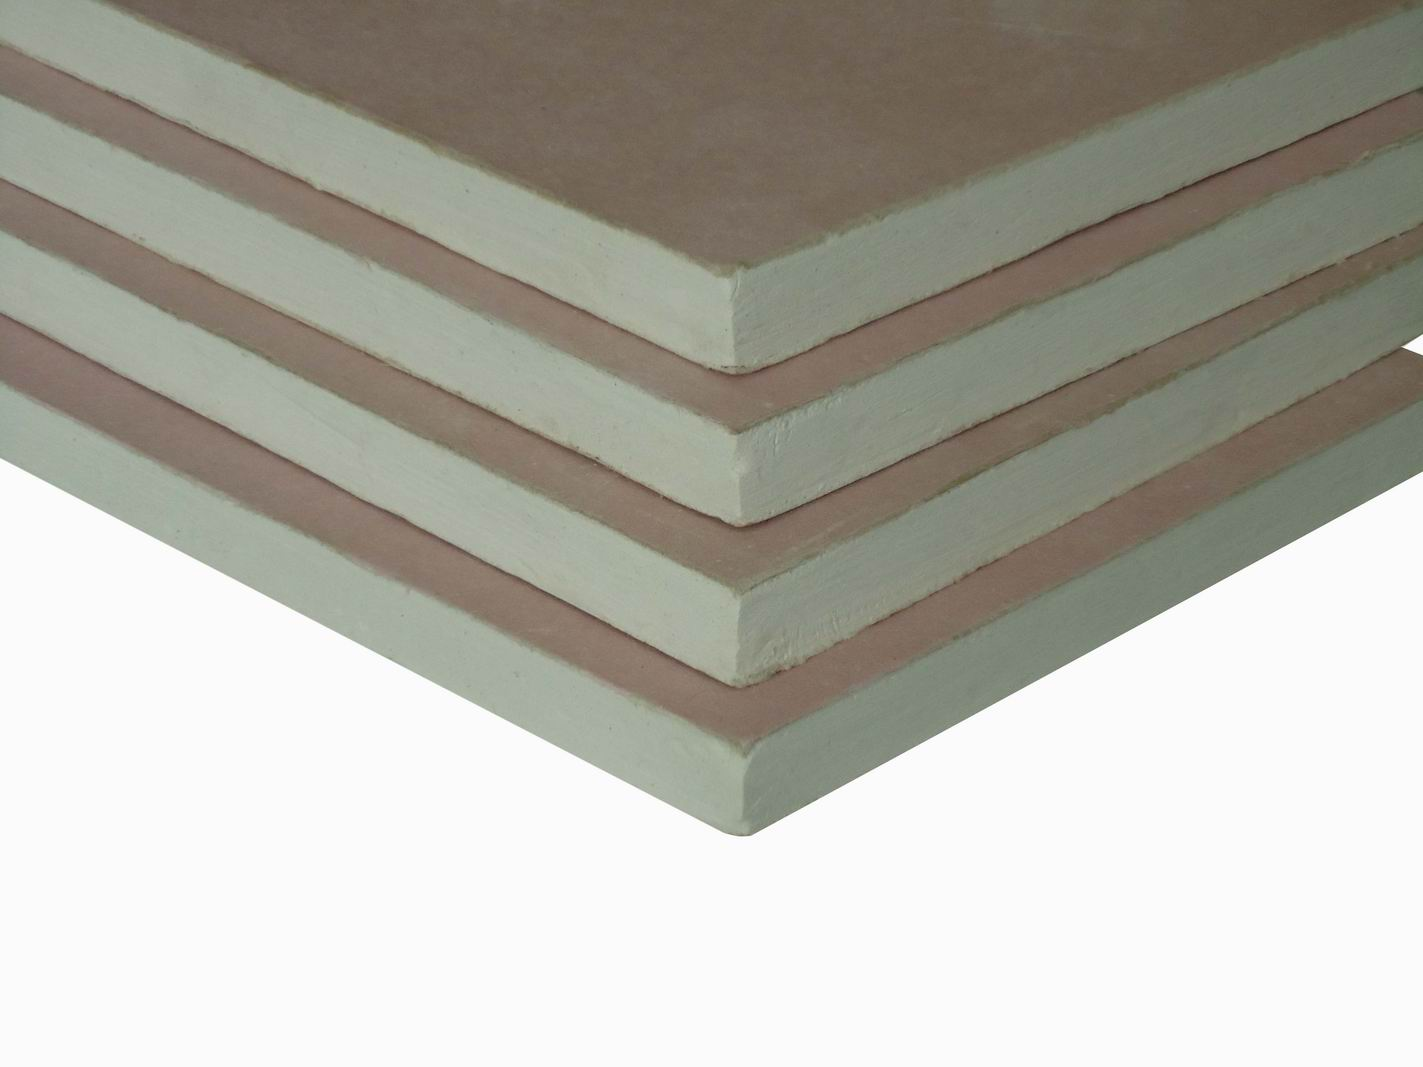 Fire-Resistant-Gypsum-Board